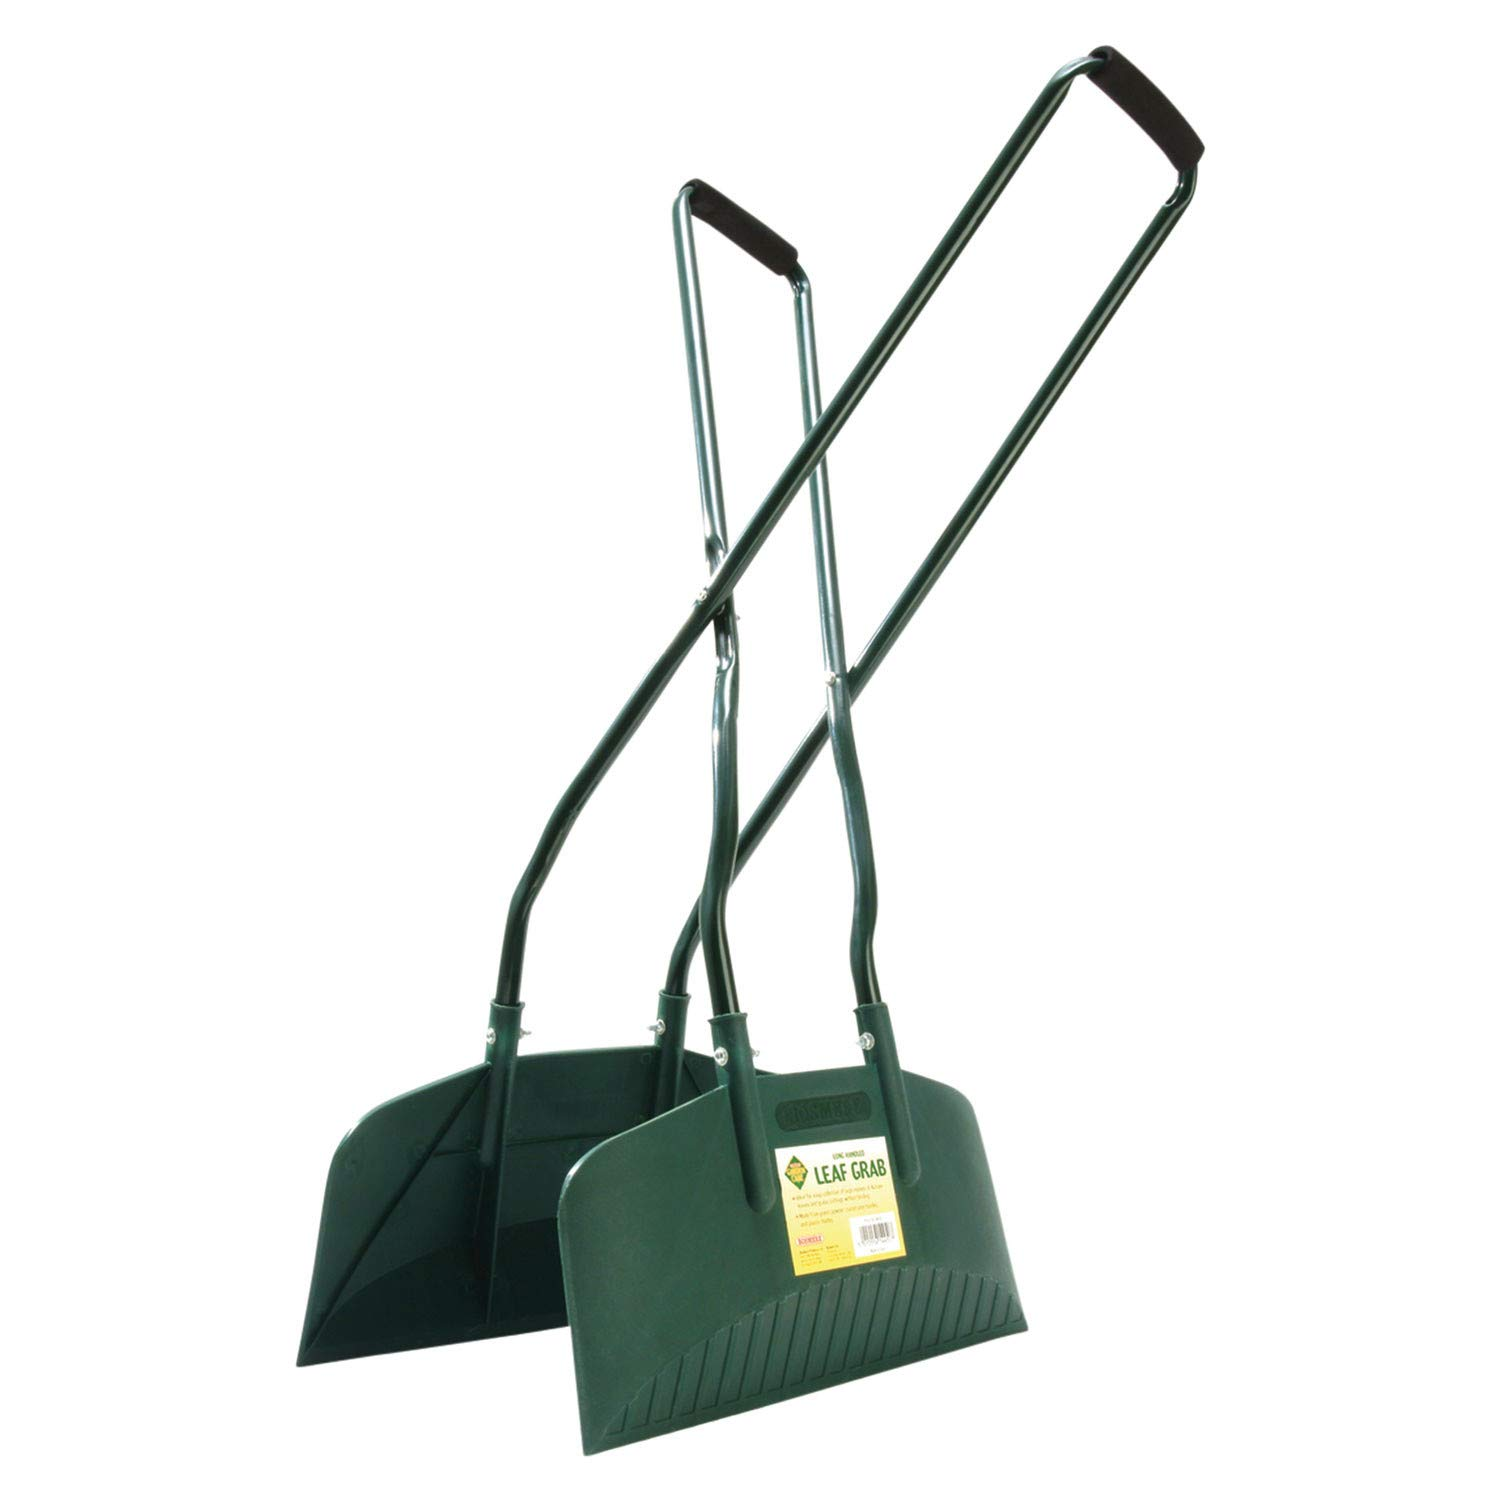 Bosmere Leaf Grabber - Long Handled Lightweight Leaf and Yard Debris Rake - Plastic and Metal - 16